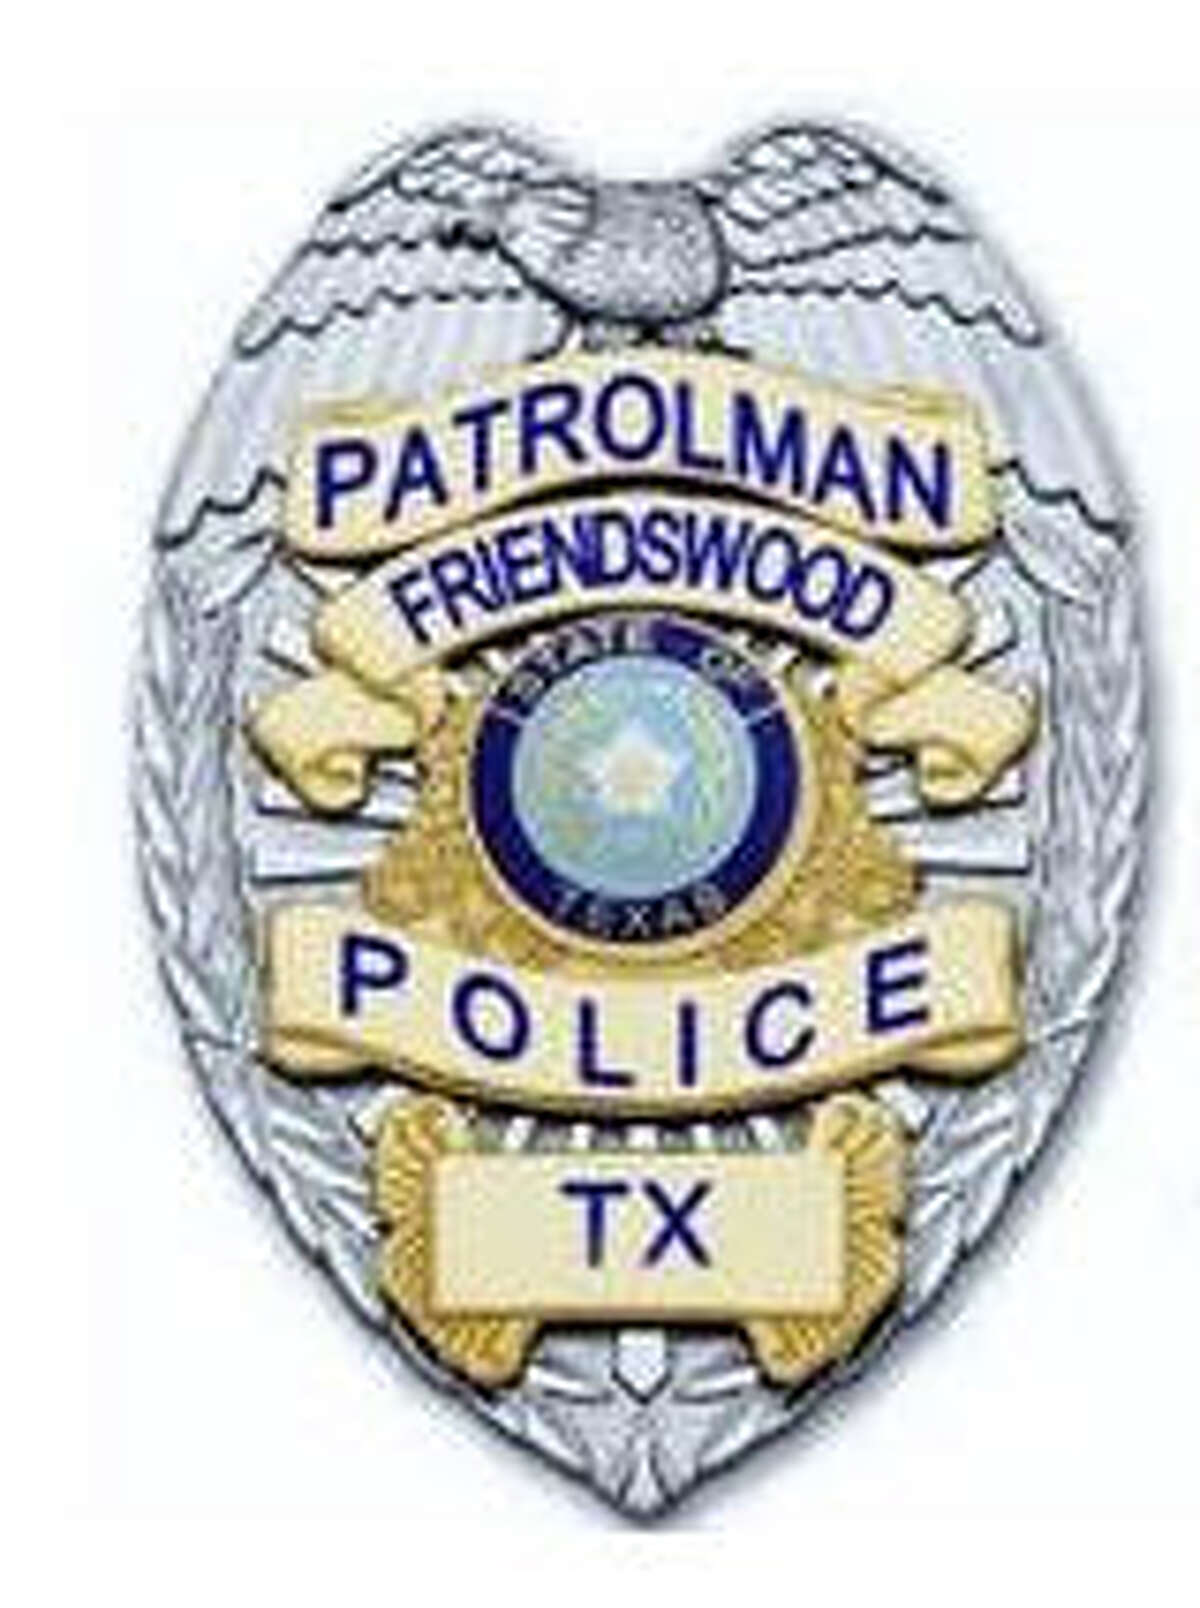 Friendswood Police Badge for weekly Friendswood crime column